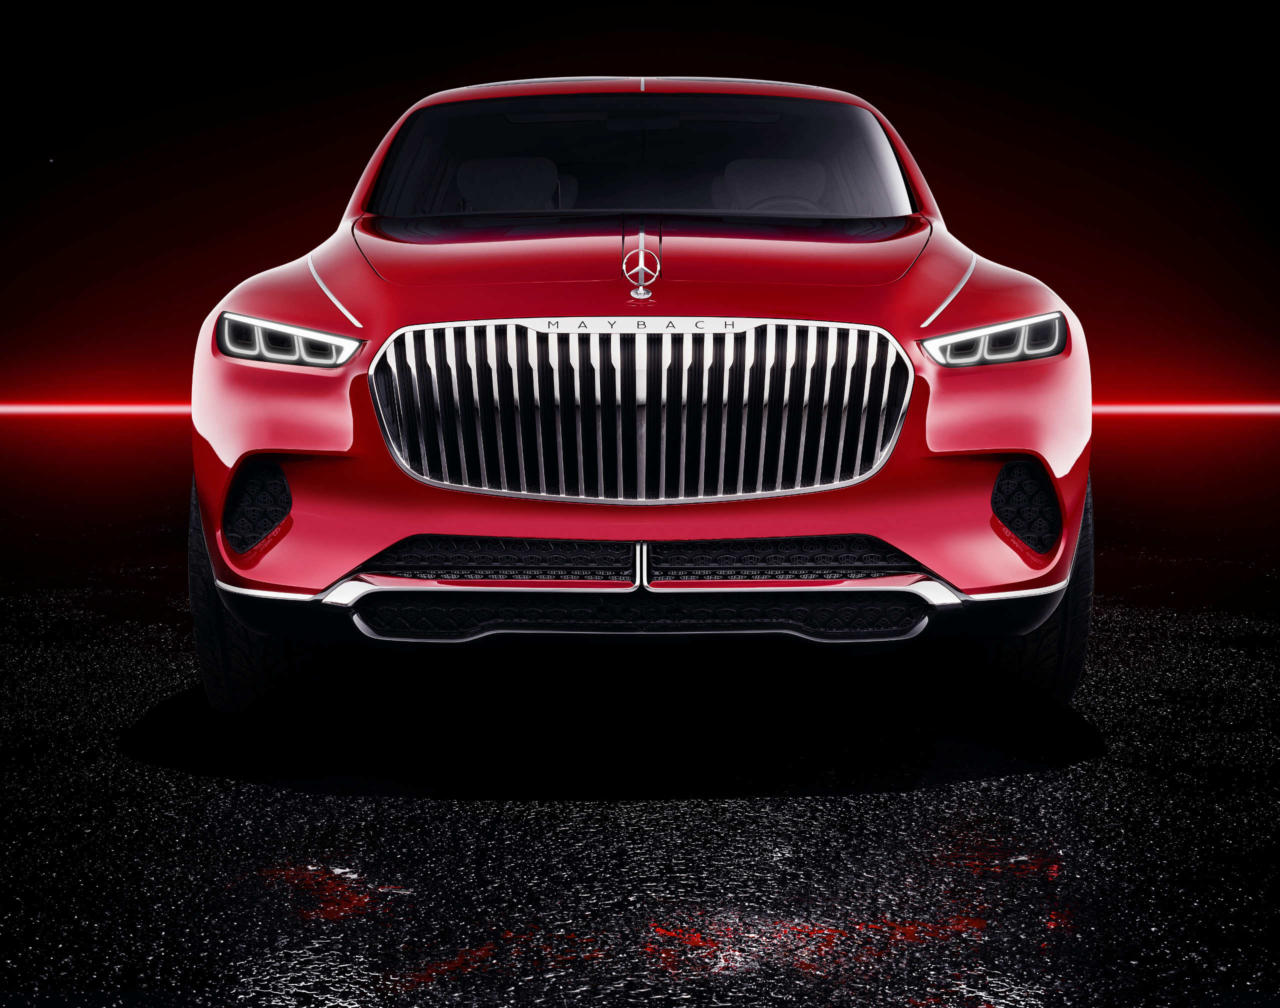 Новый автомобиль Vision Mercedes-Maybach Ultimate Luxury решетка радиатора